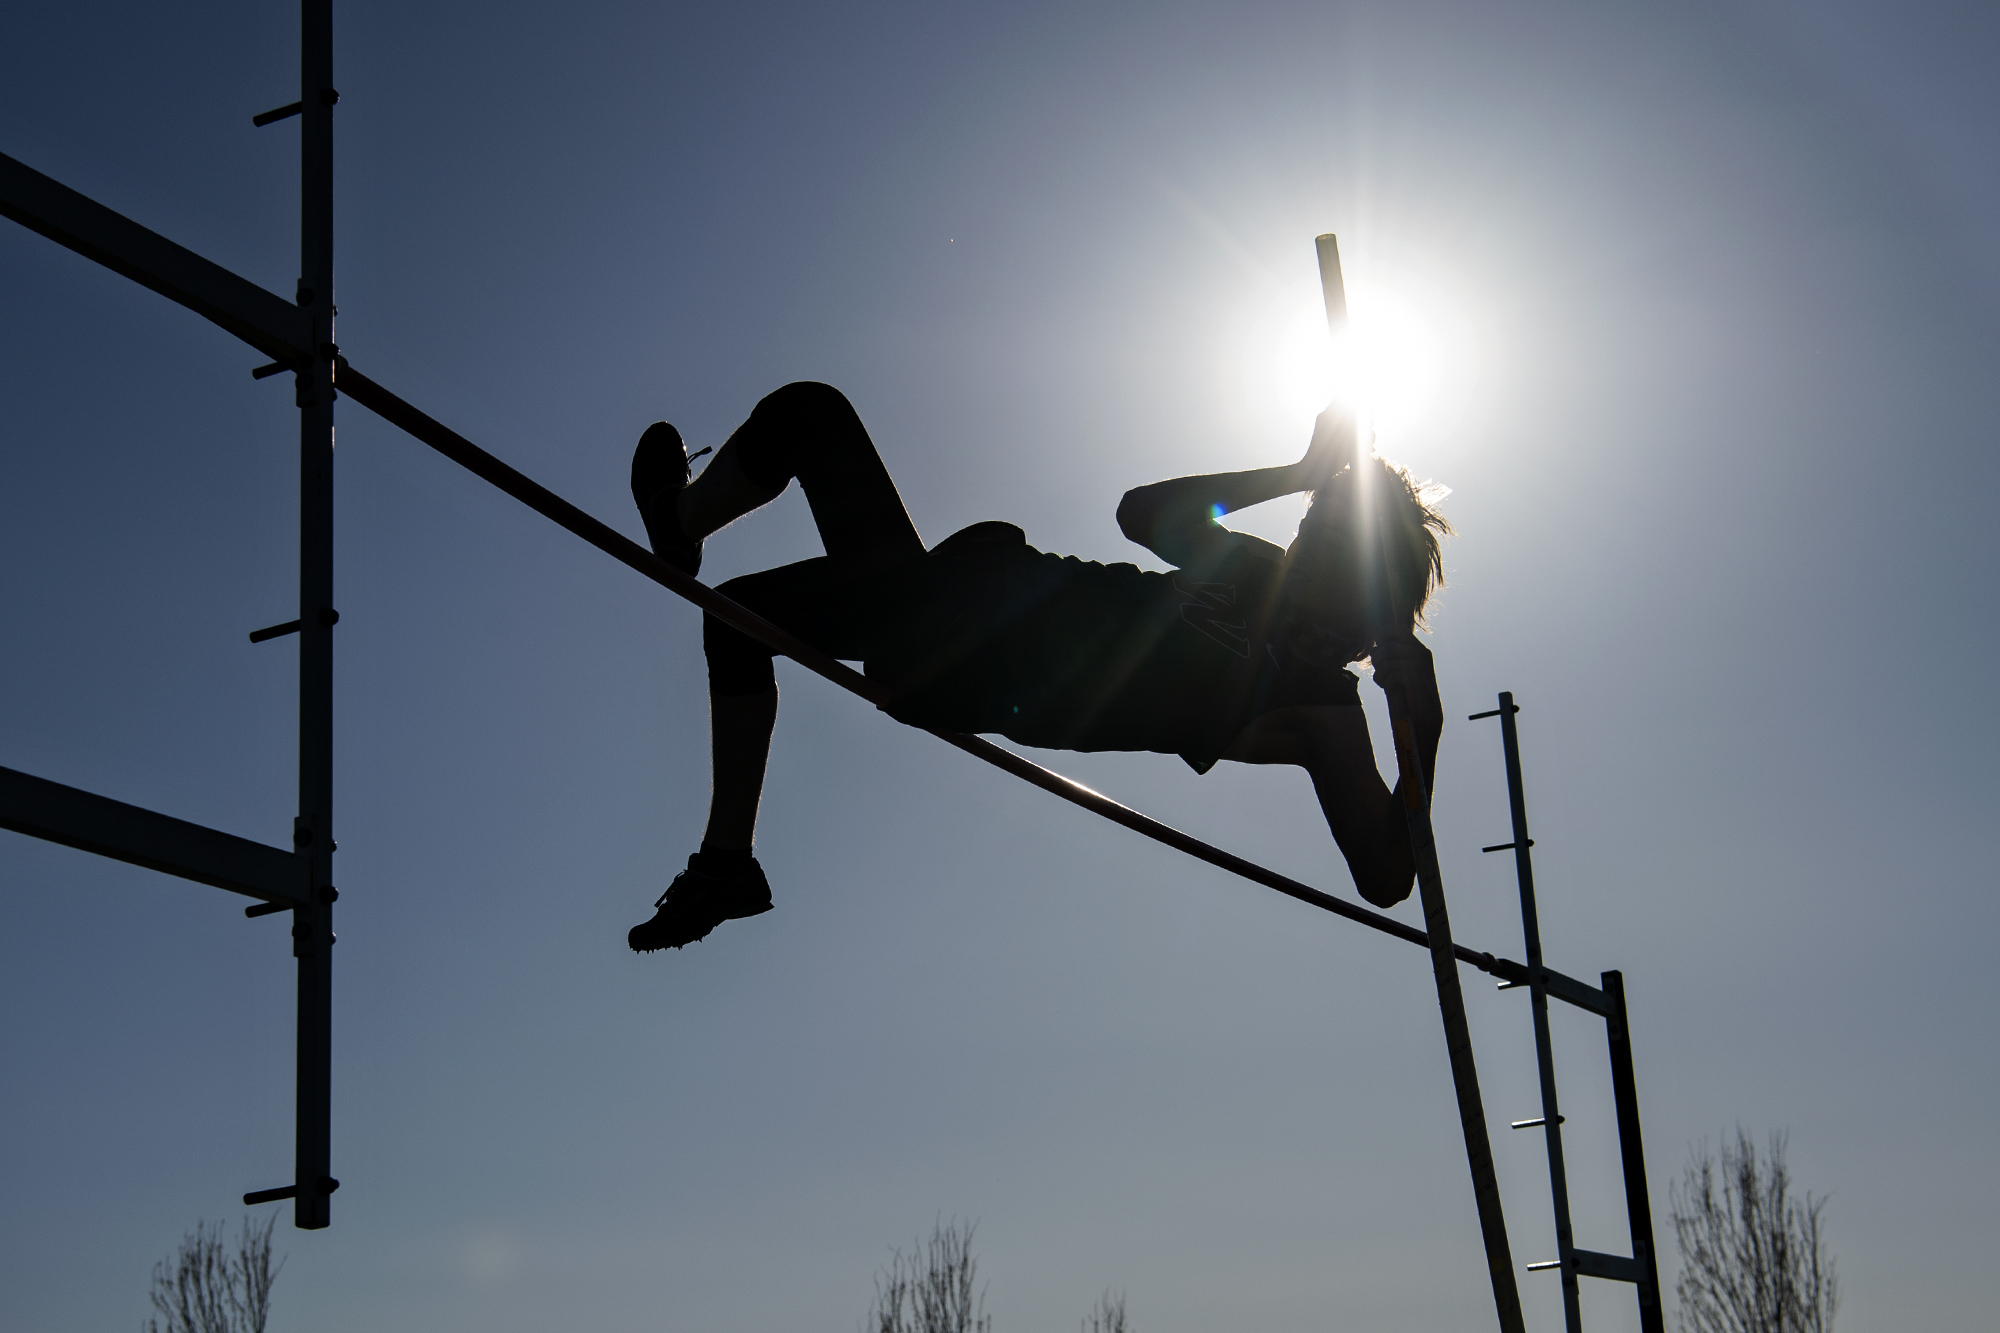 Woodland freshman Nathaniel Risley clears 9 feet in the boys pole vault during a 2A Greater St. Helens League meet on Thursday, April 15, 2021, at Woodland High School.